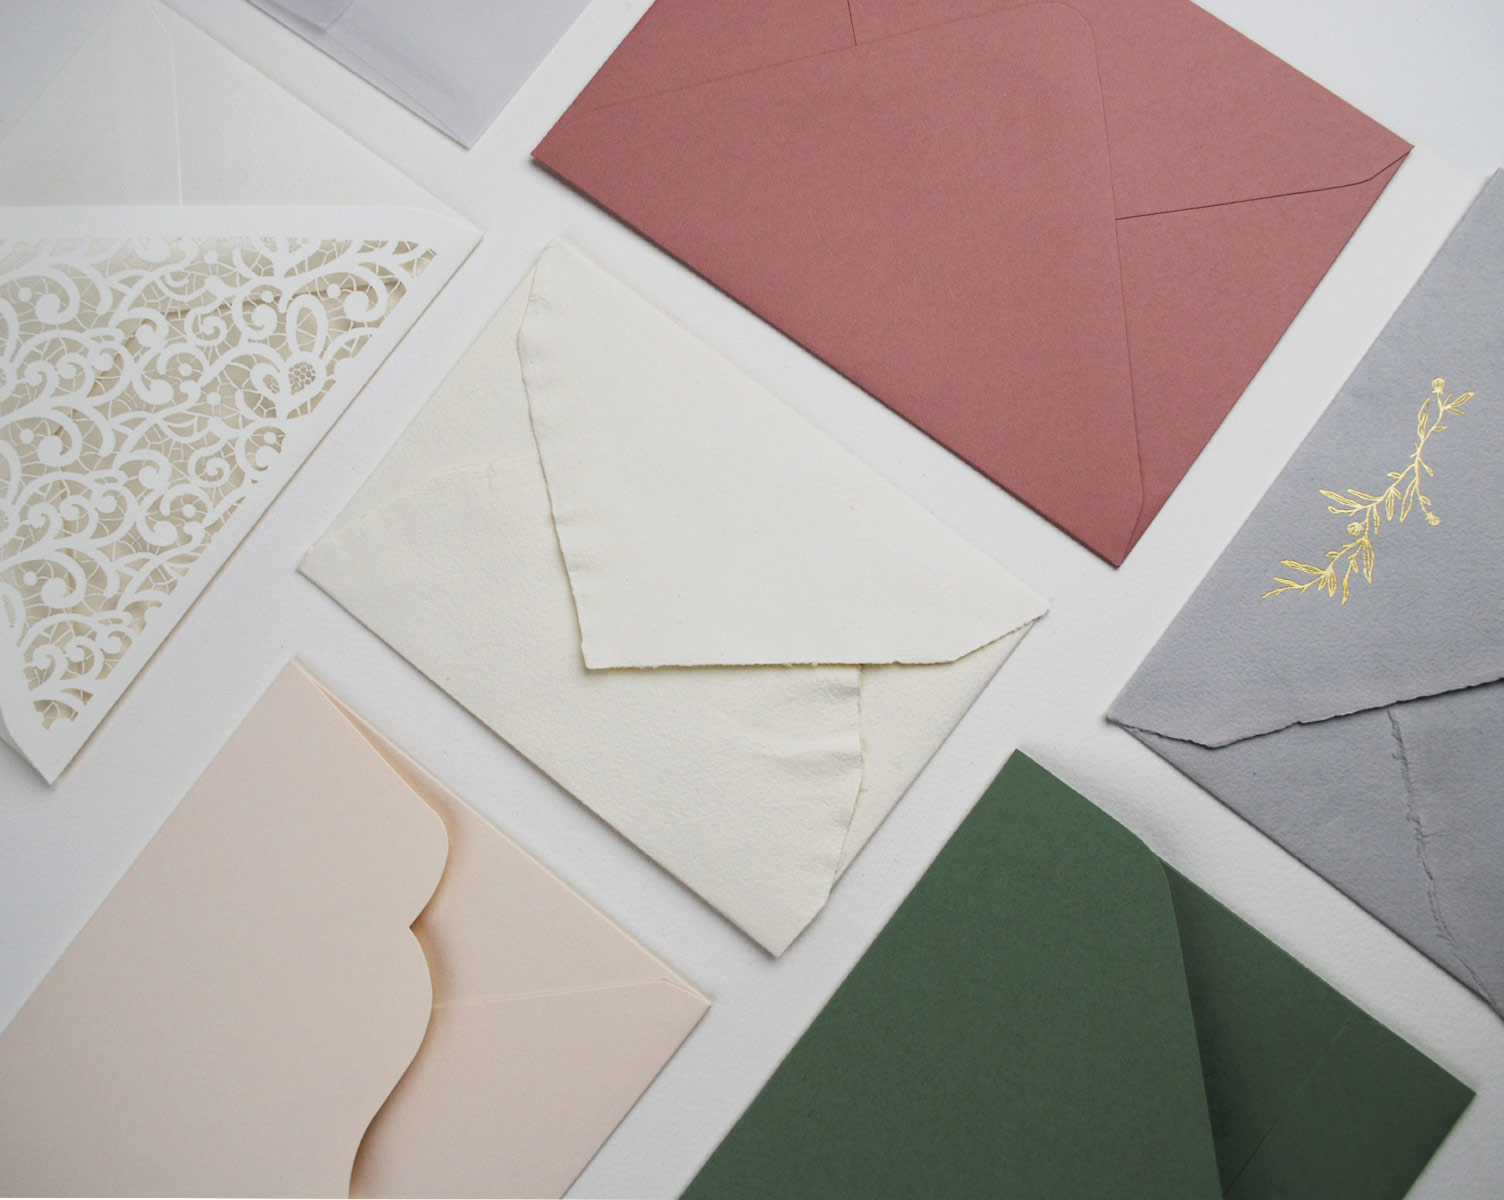 Variety of envelopes from Cornwall Stationery (lasercut, foil, 100% cotton, deckle edged, handmade, scalloped edged)